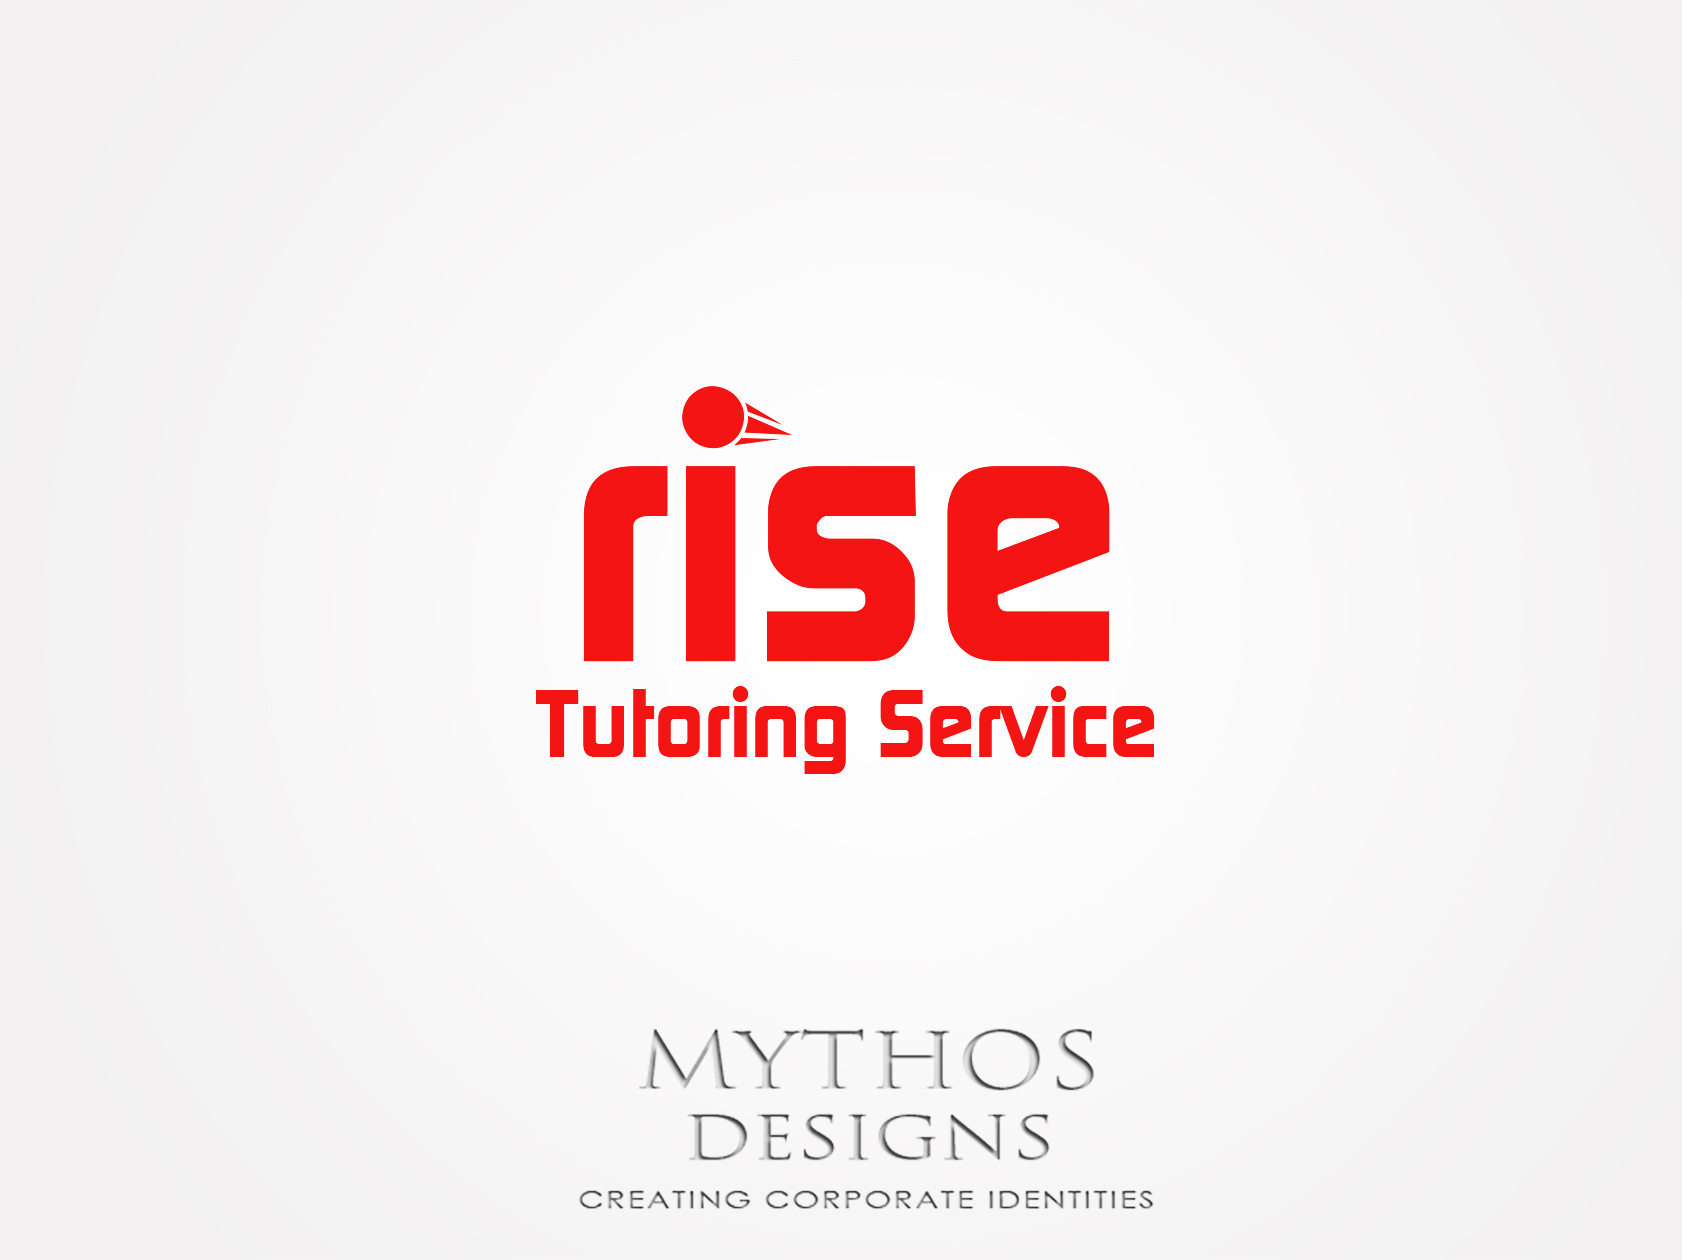 Logo Design by Mythos Designs - Entry No. 146 in the Logo Design Contest Imaginative Logo Design for Rise Tutoring Service.